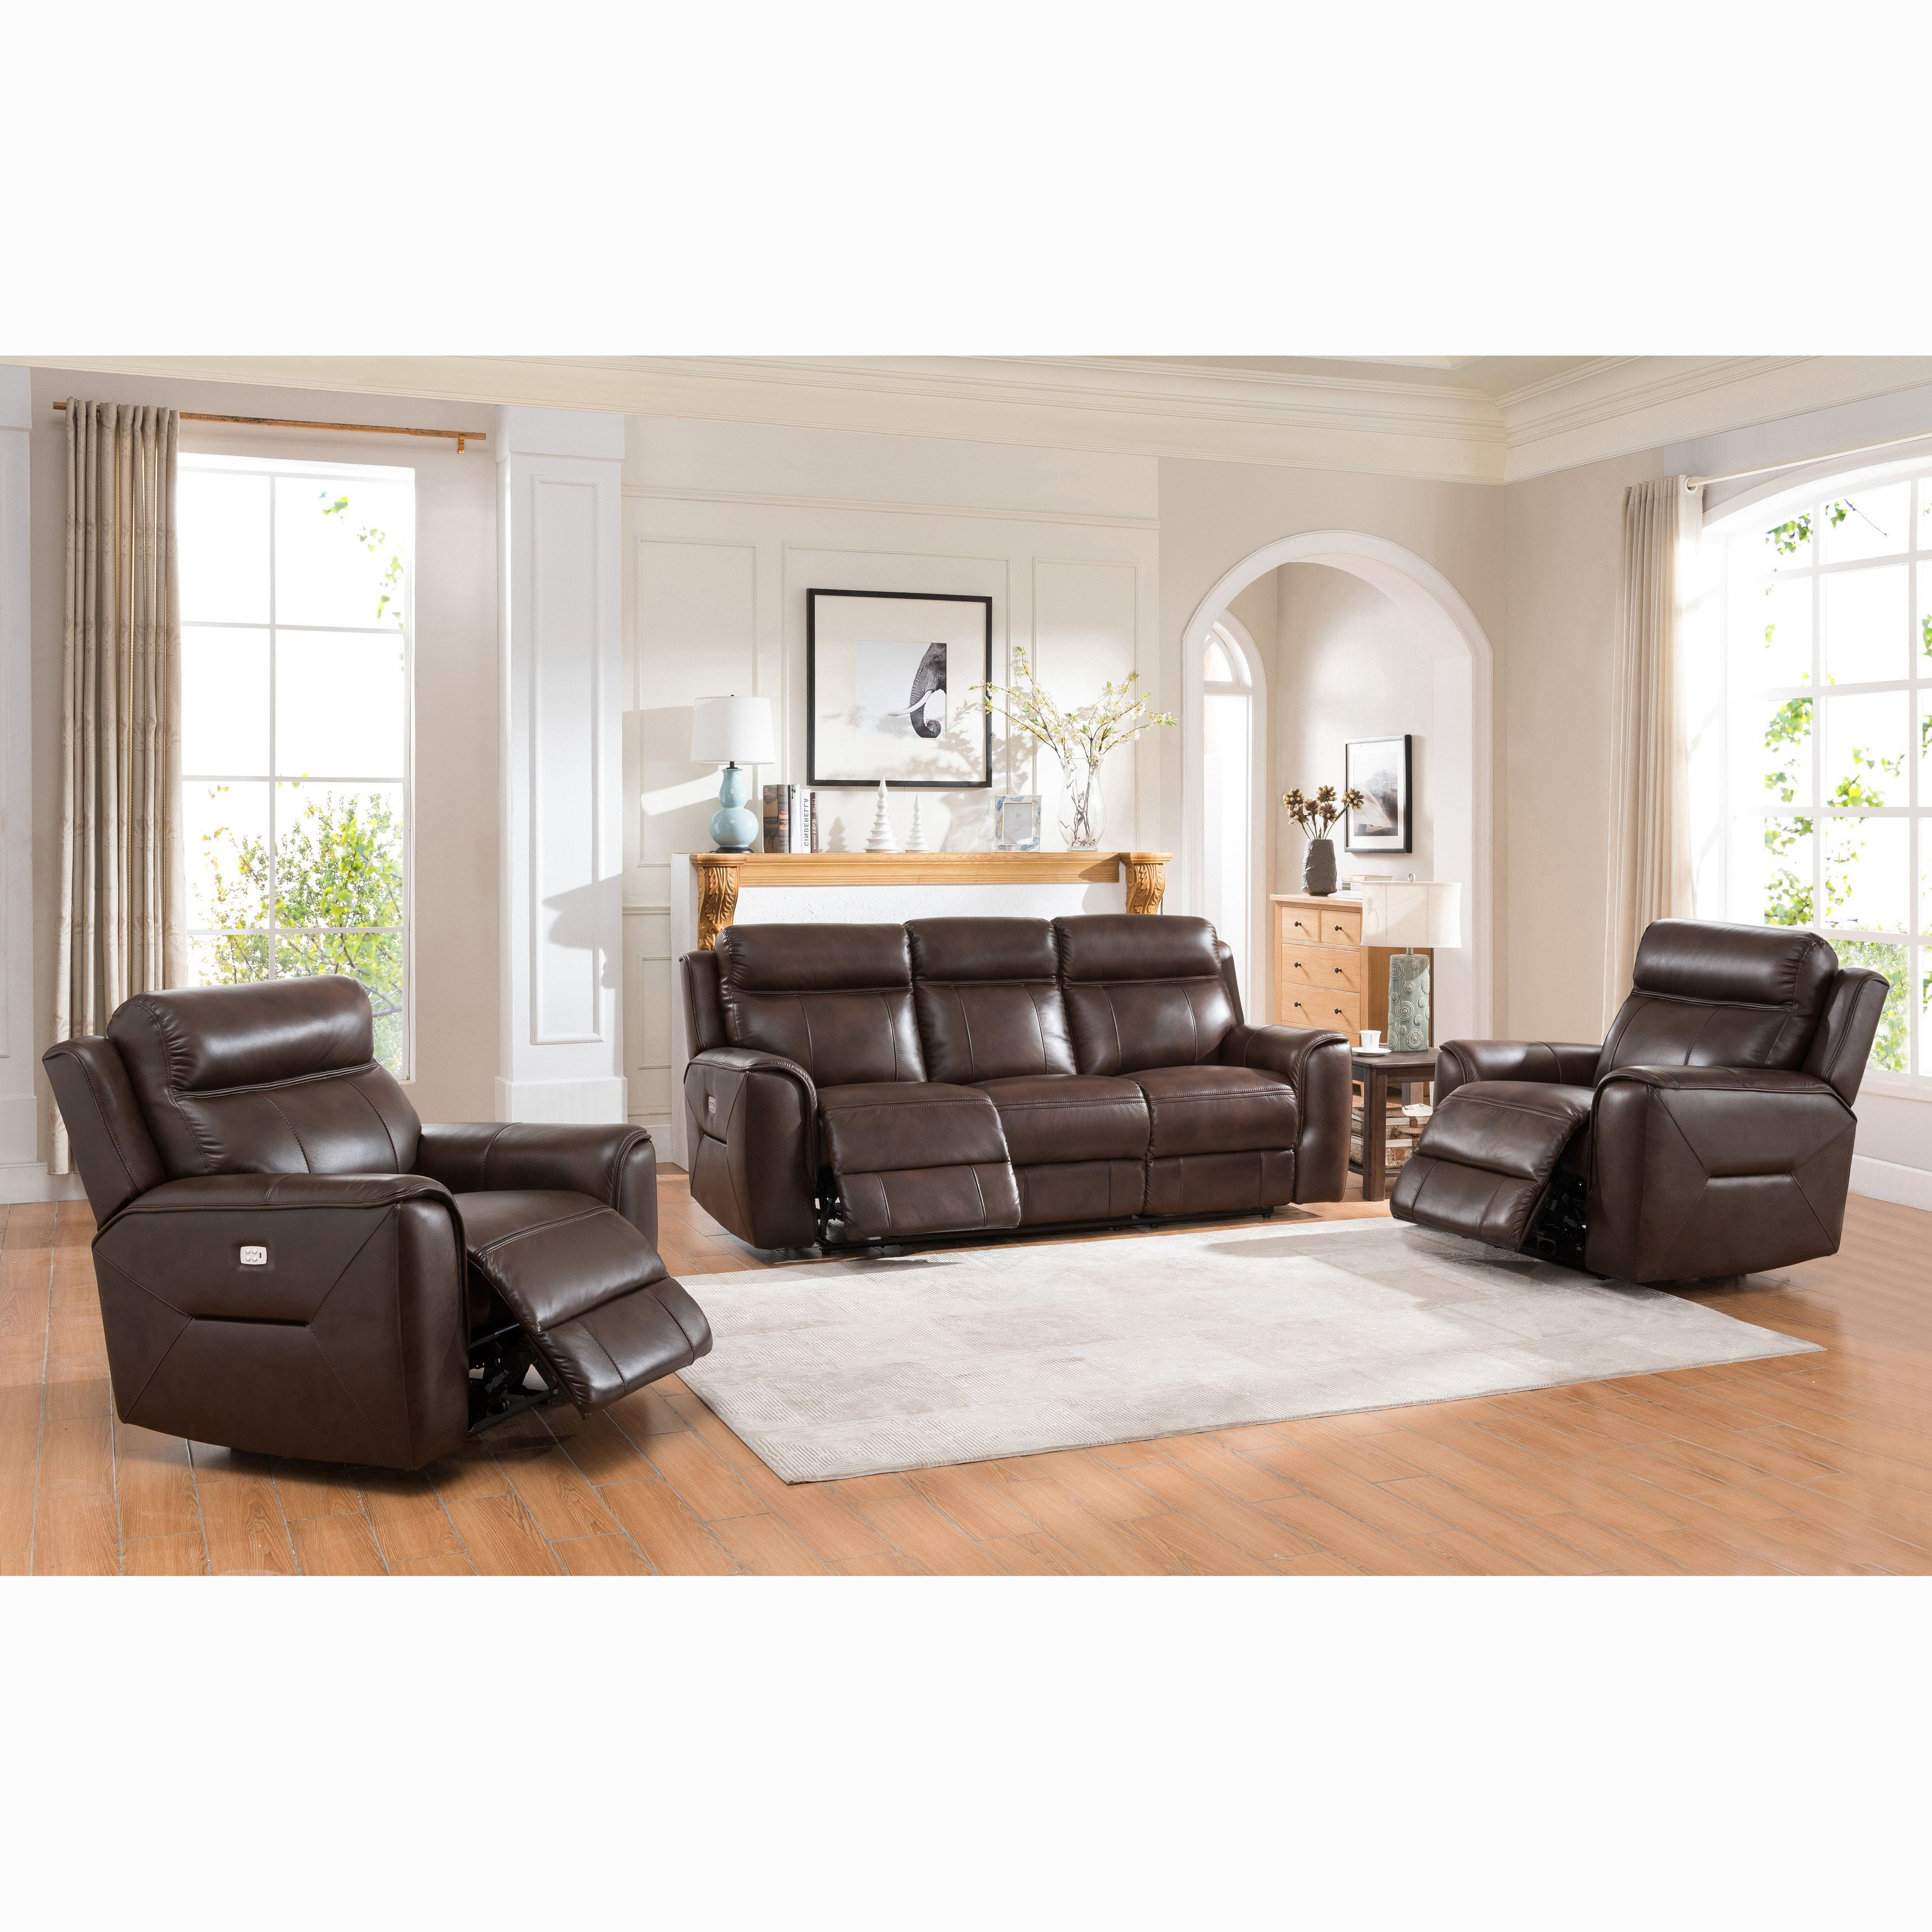 taft brown top grain leather power reclining sofa and two chairs rh pinterest co uk